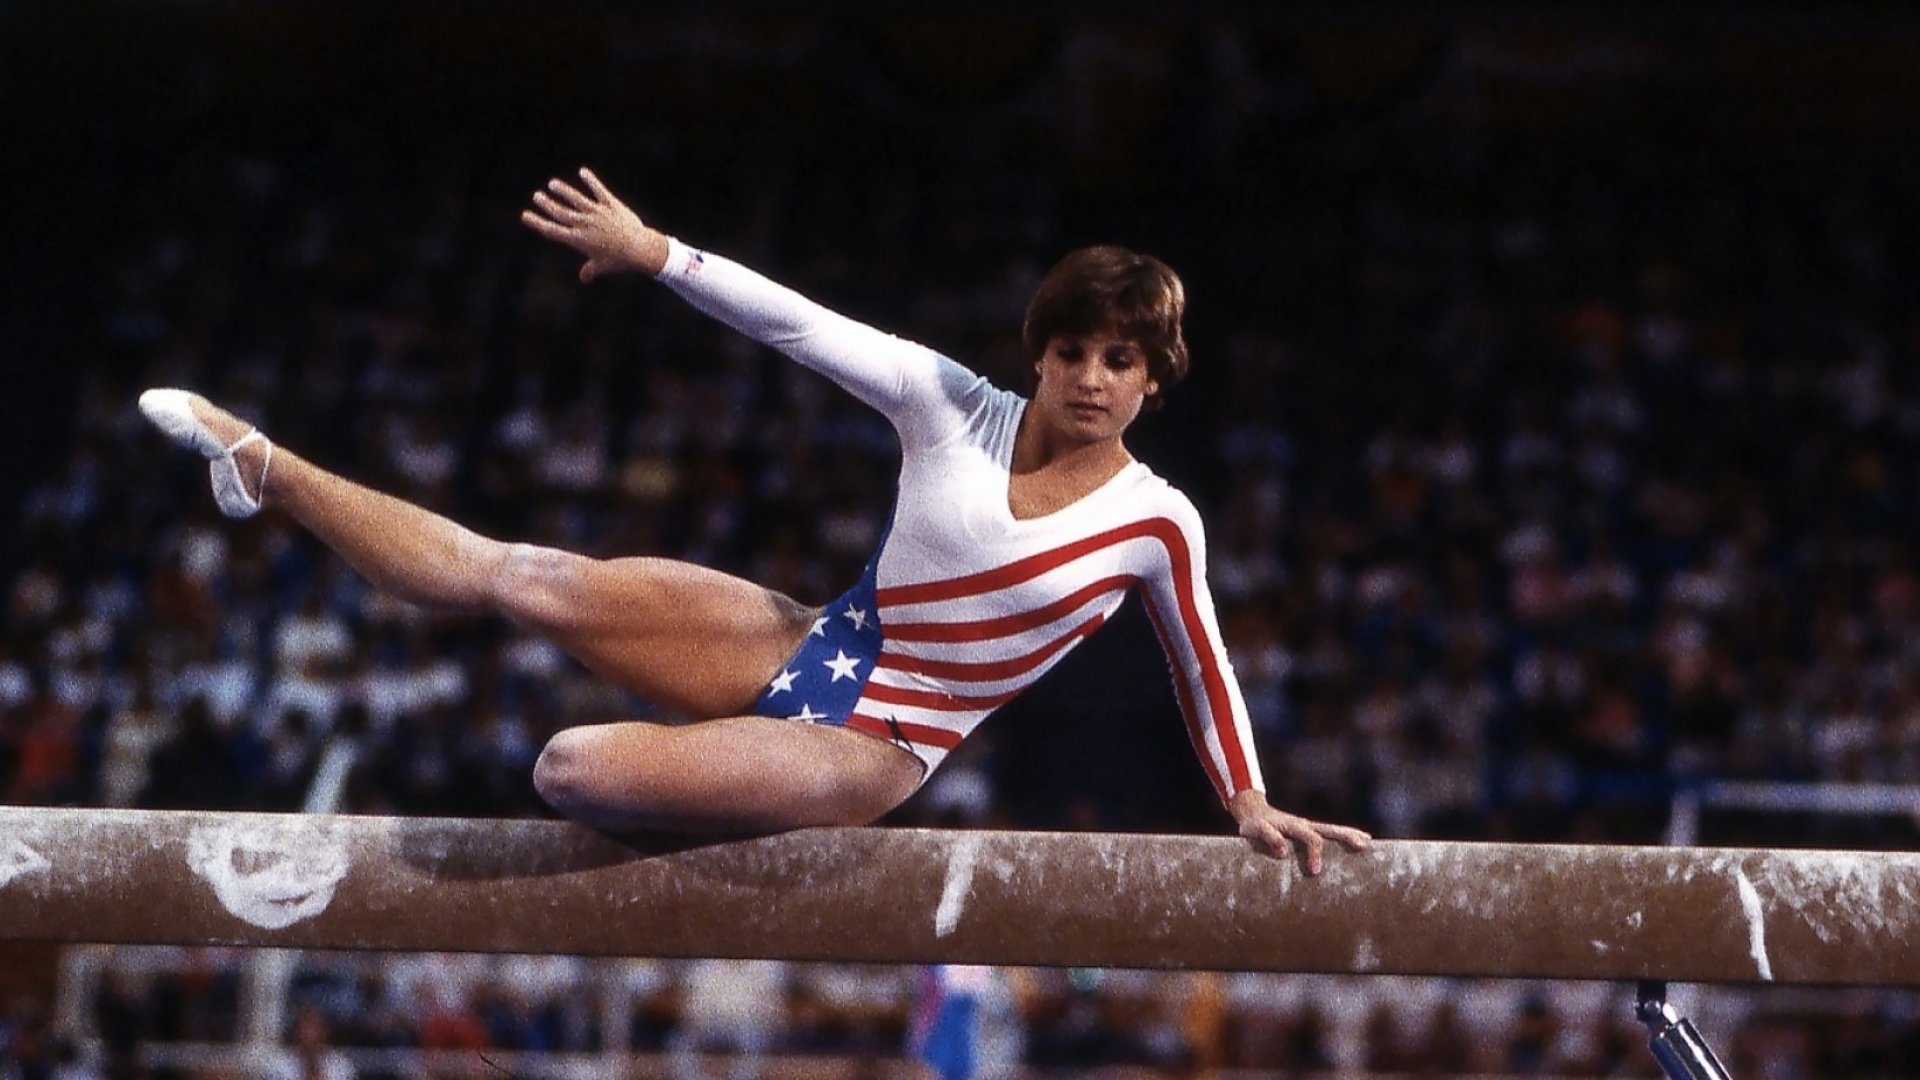 Mary Lou Retton of the United States in action on the balance beam during the Summer Olympics in Los Angeles, California.